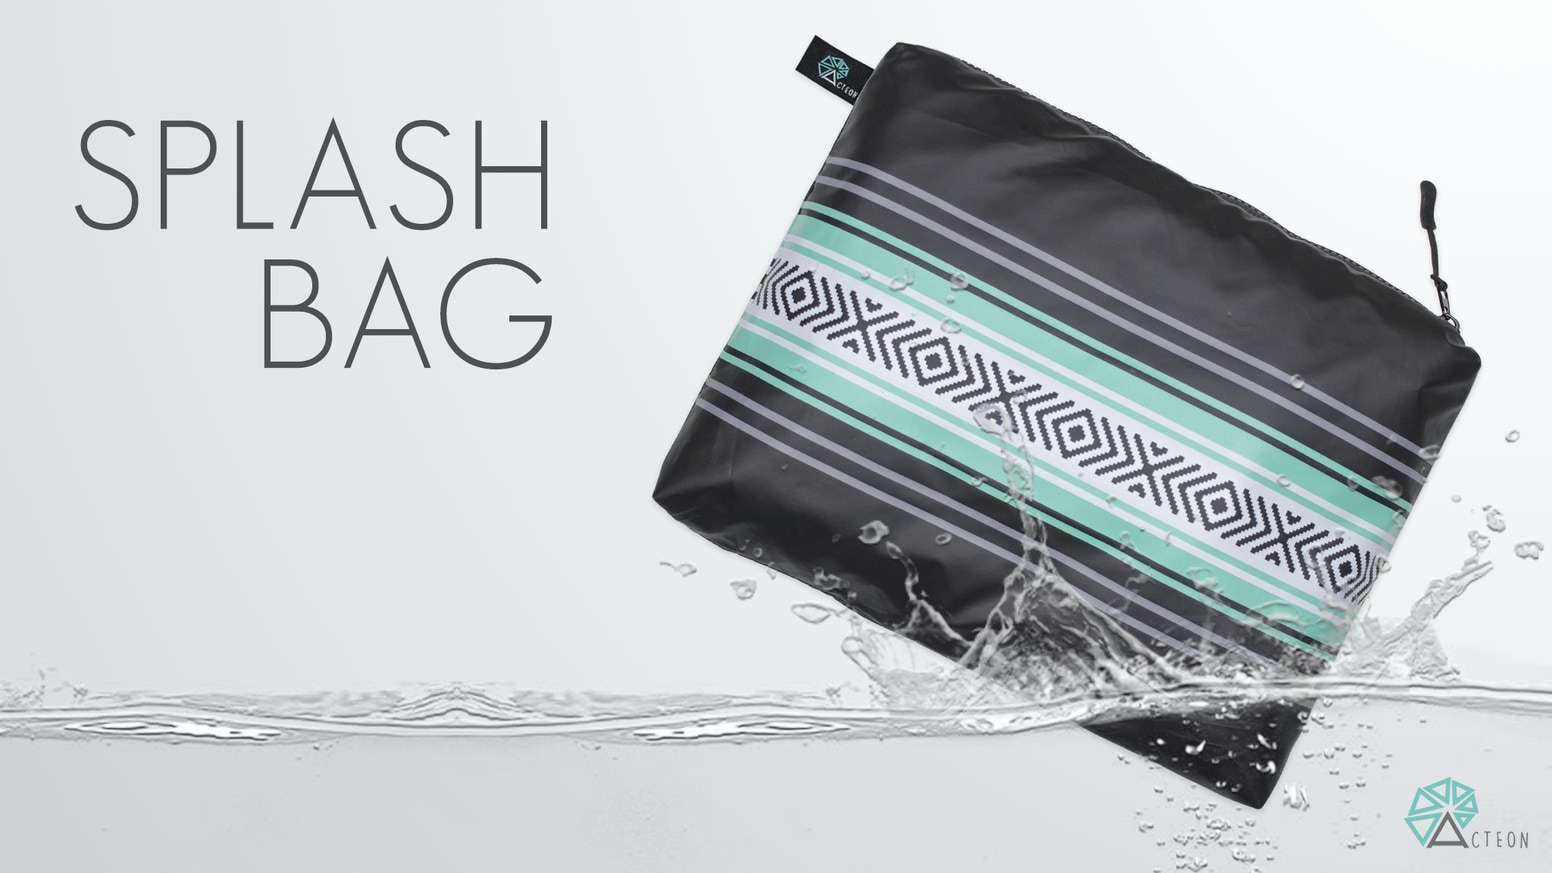 Multipurpose wet/dry bag designed to keep your wet items separate and your dry items dry.